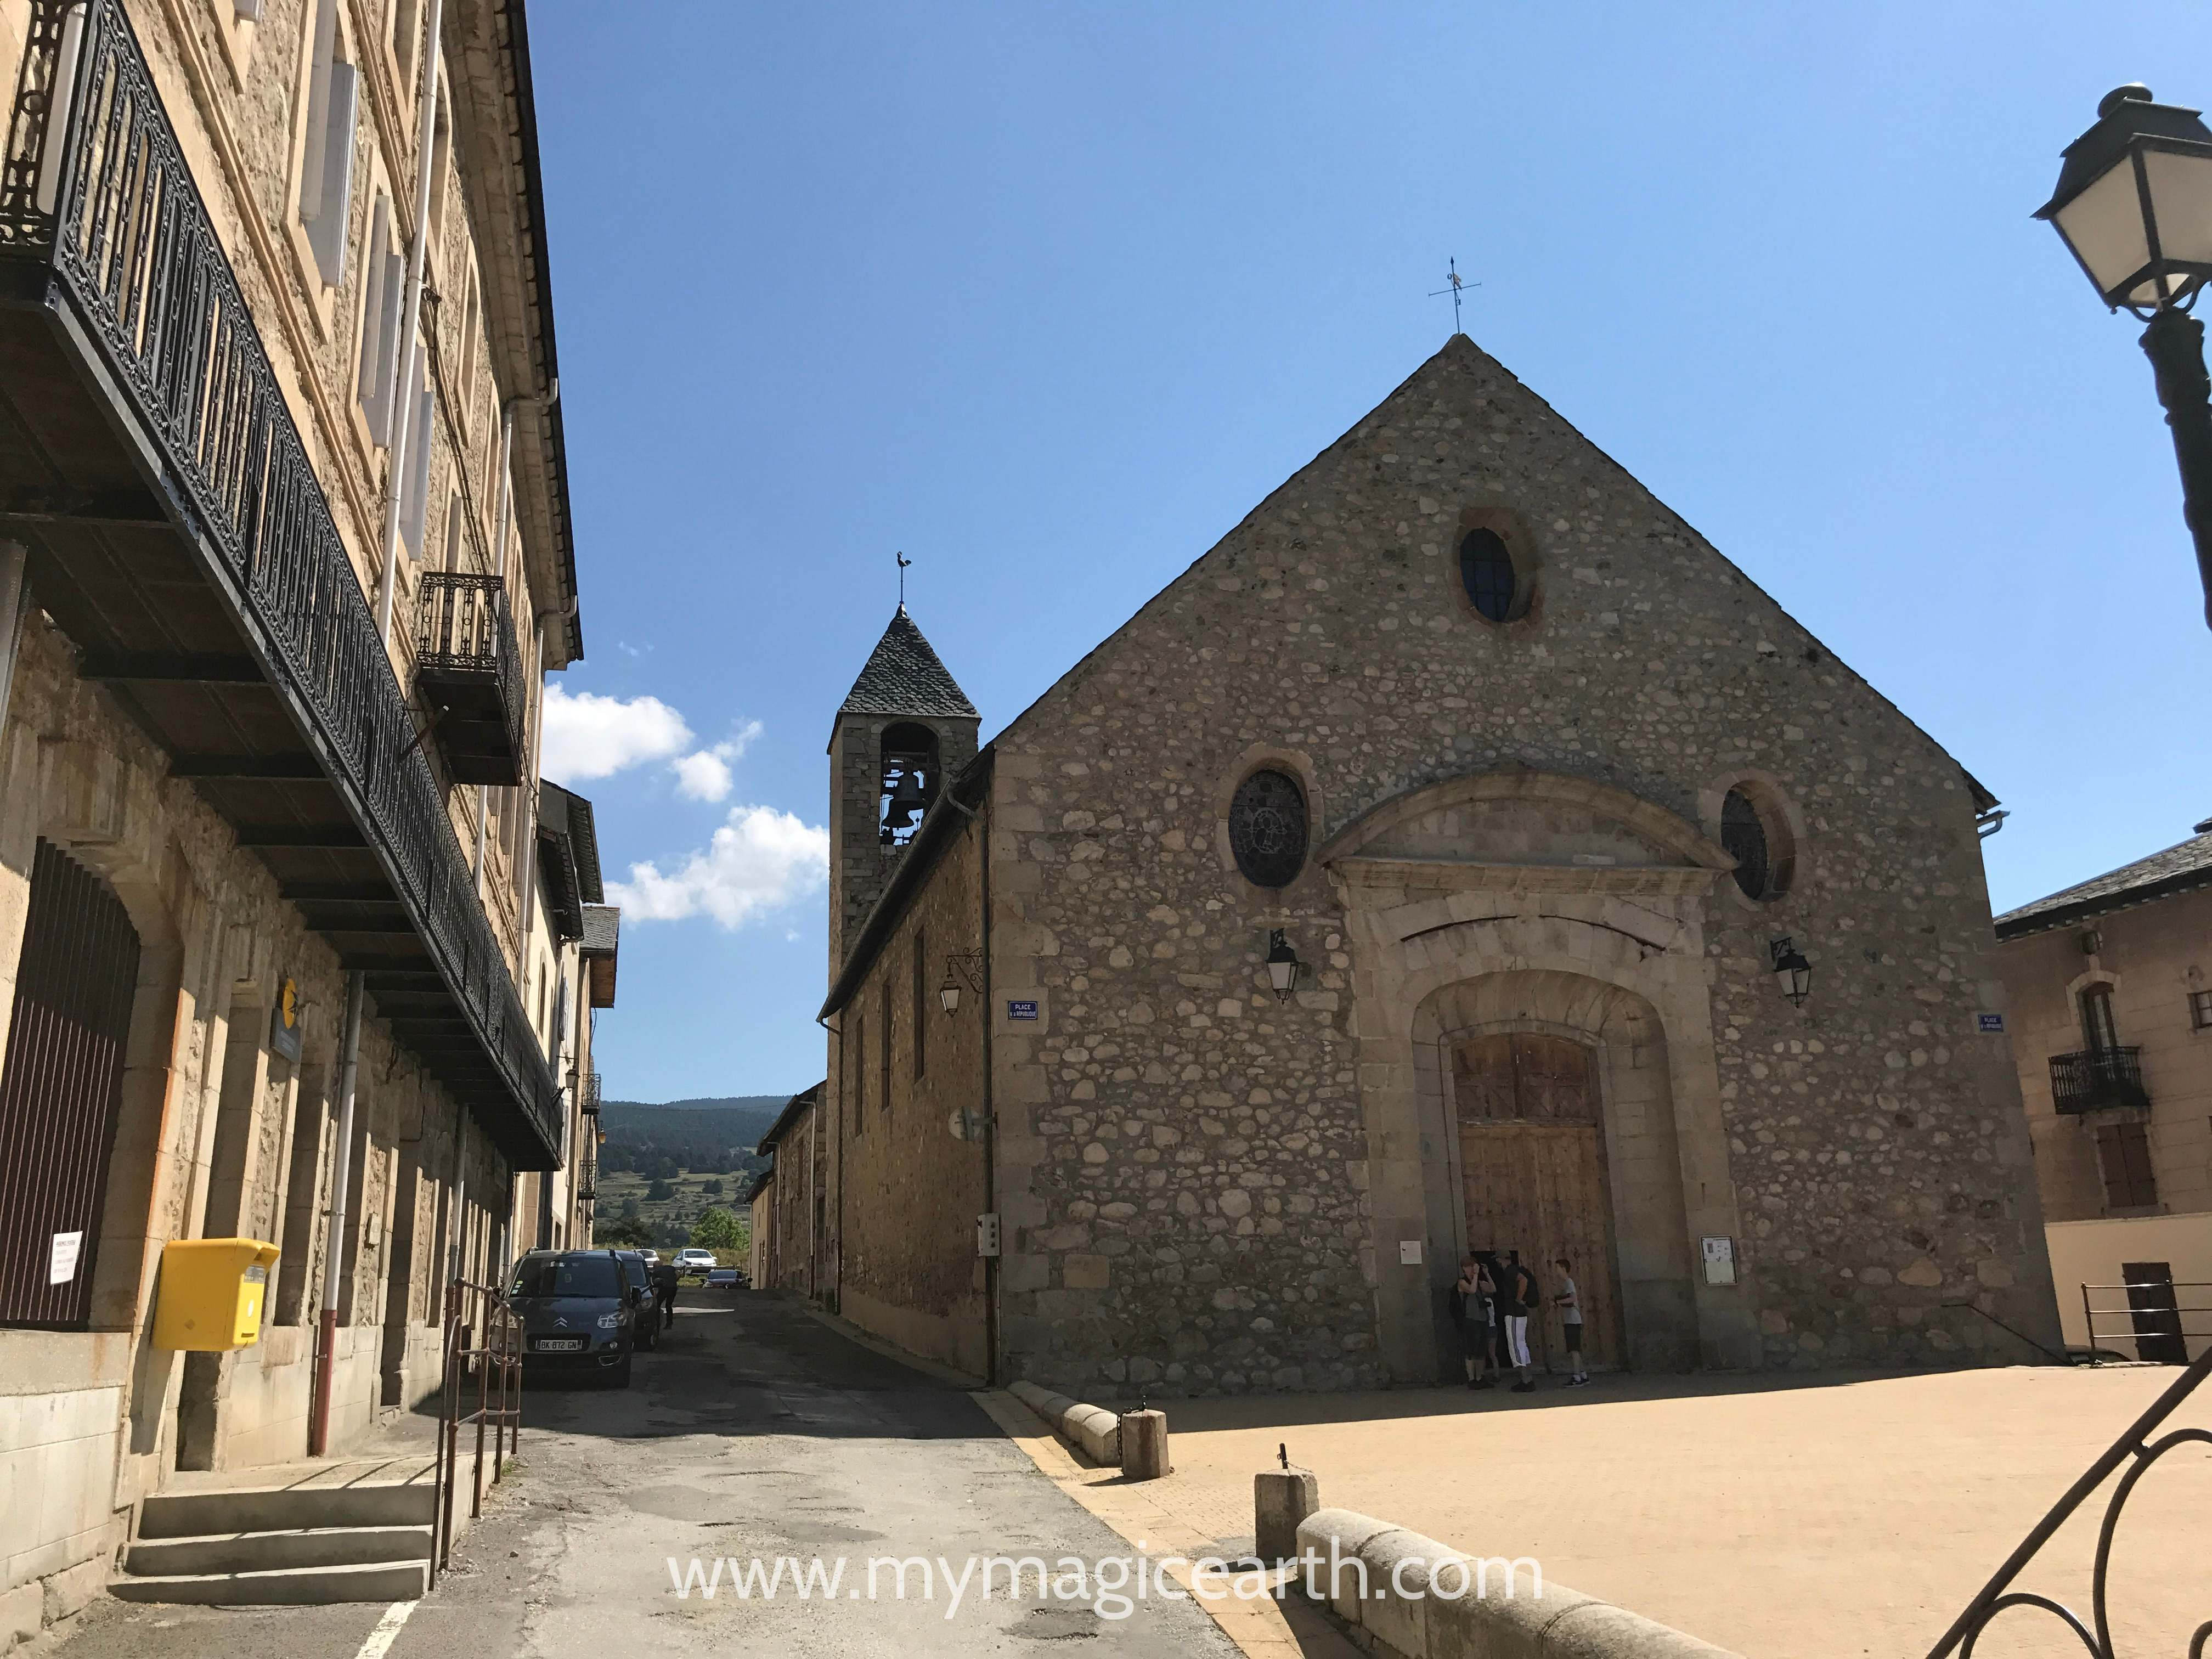 The facade of the Saint-Louis Church in Mont Louis, Pyrenees, France